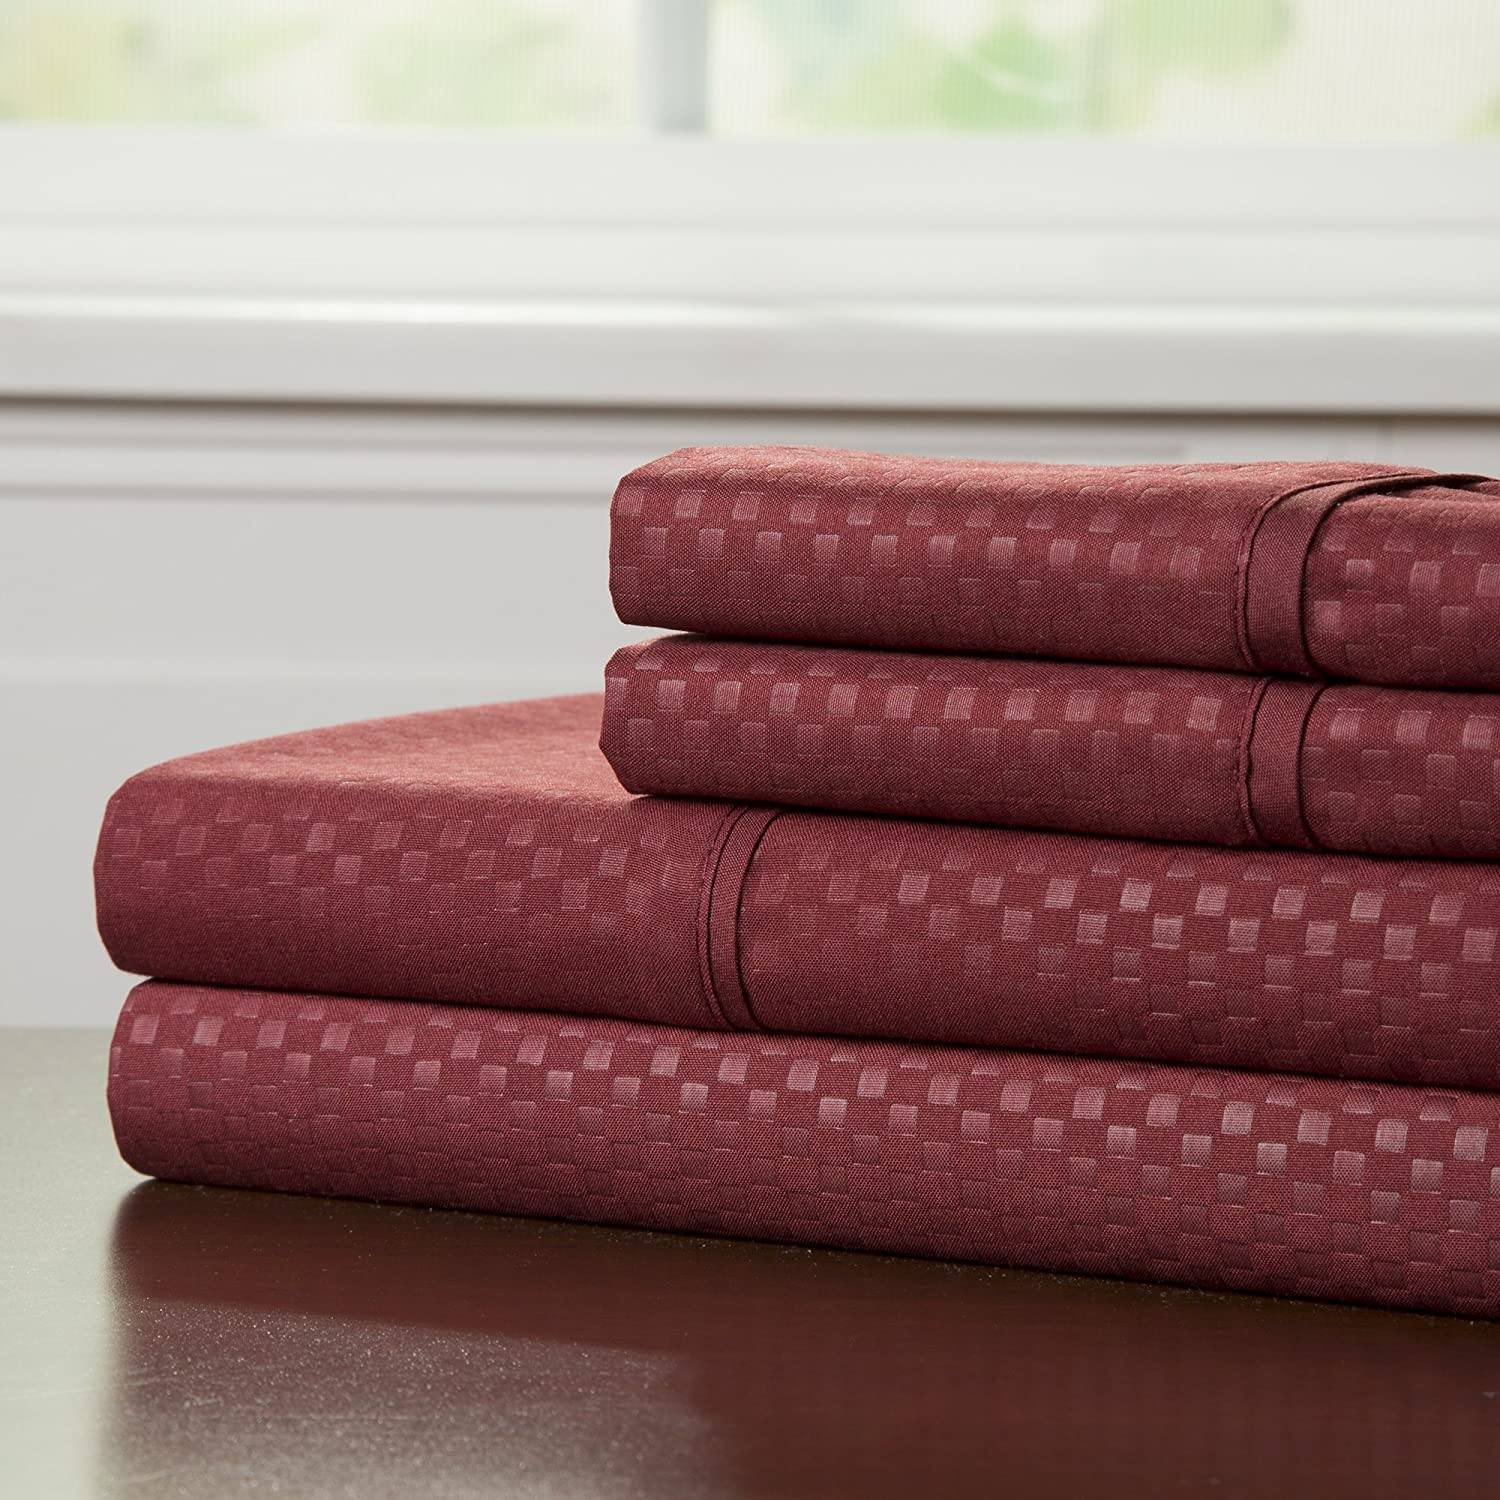 Brushed Microfiber Sheets Set- 4 Piece Hypoallergenic Bed Linens with Deep Pocket Fitted Sheet and Embossed Design by Lavish Home (Burgundy, Full)